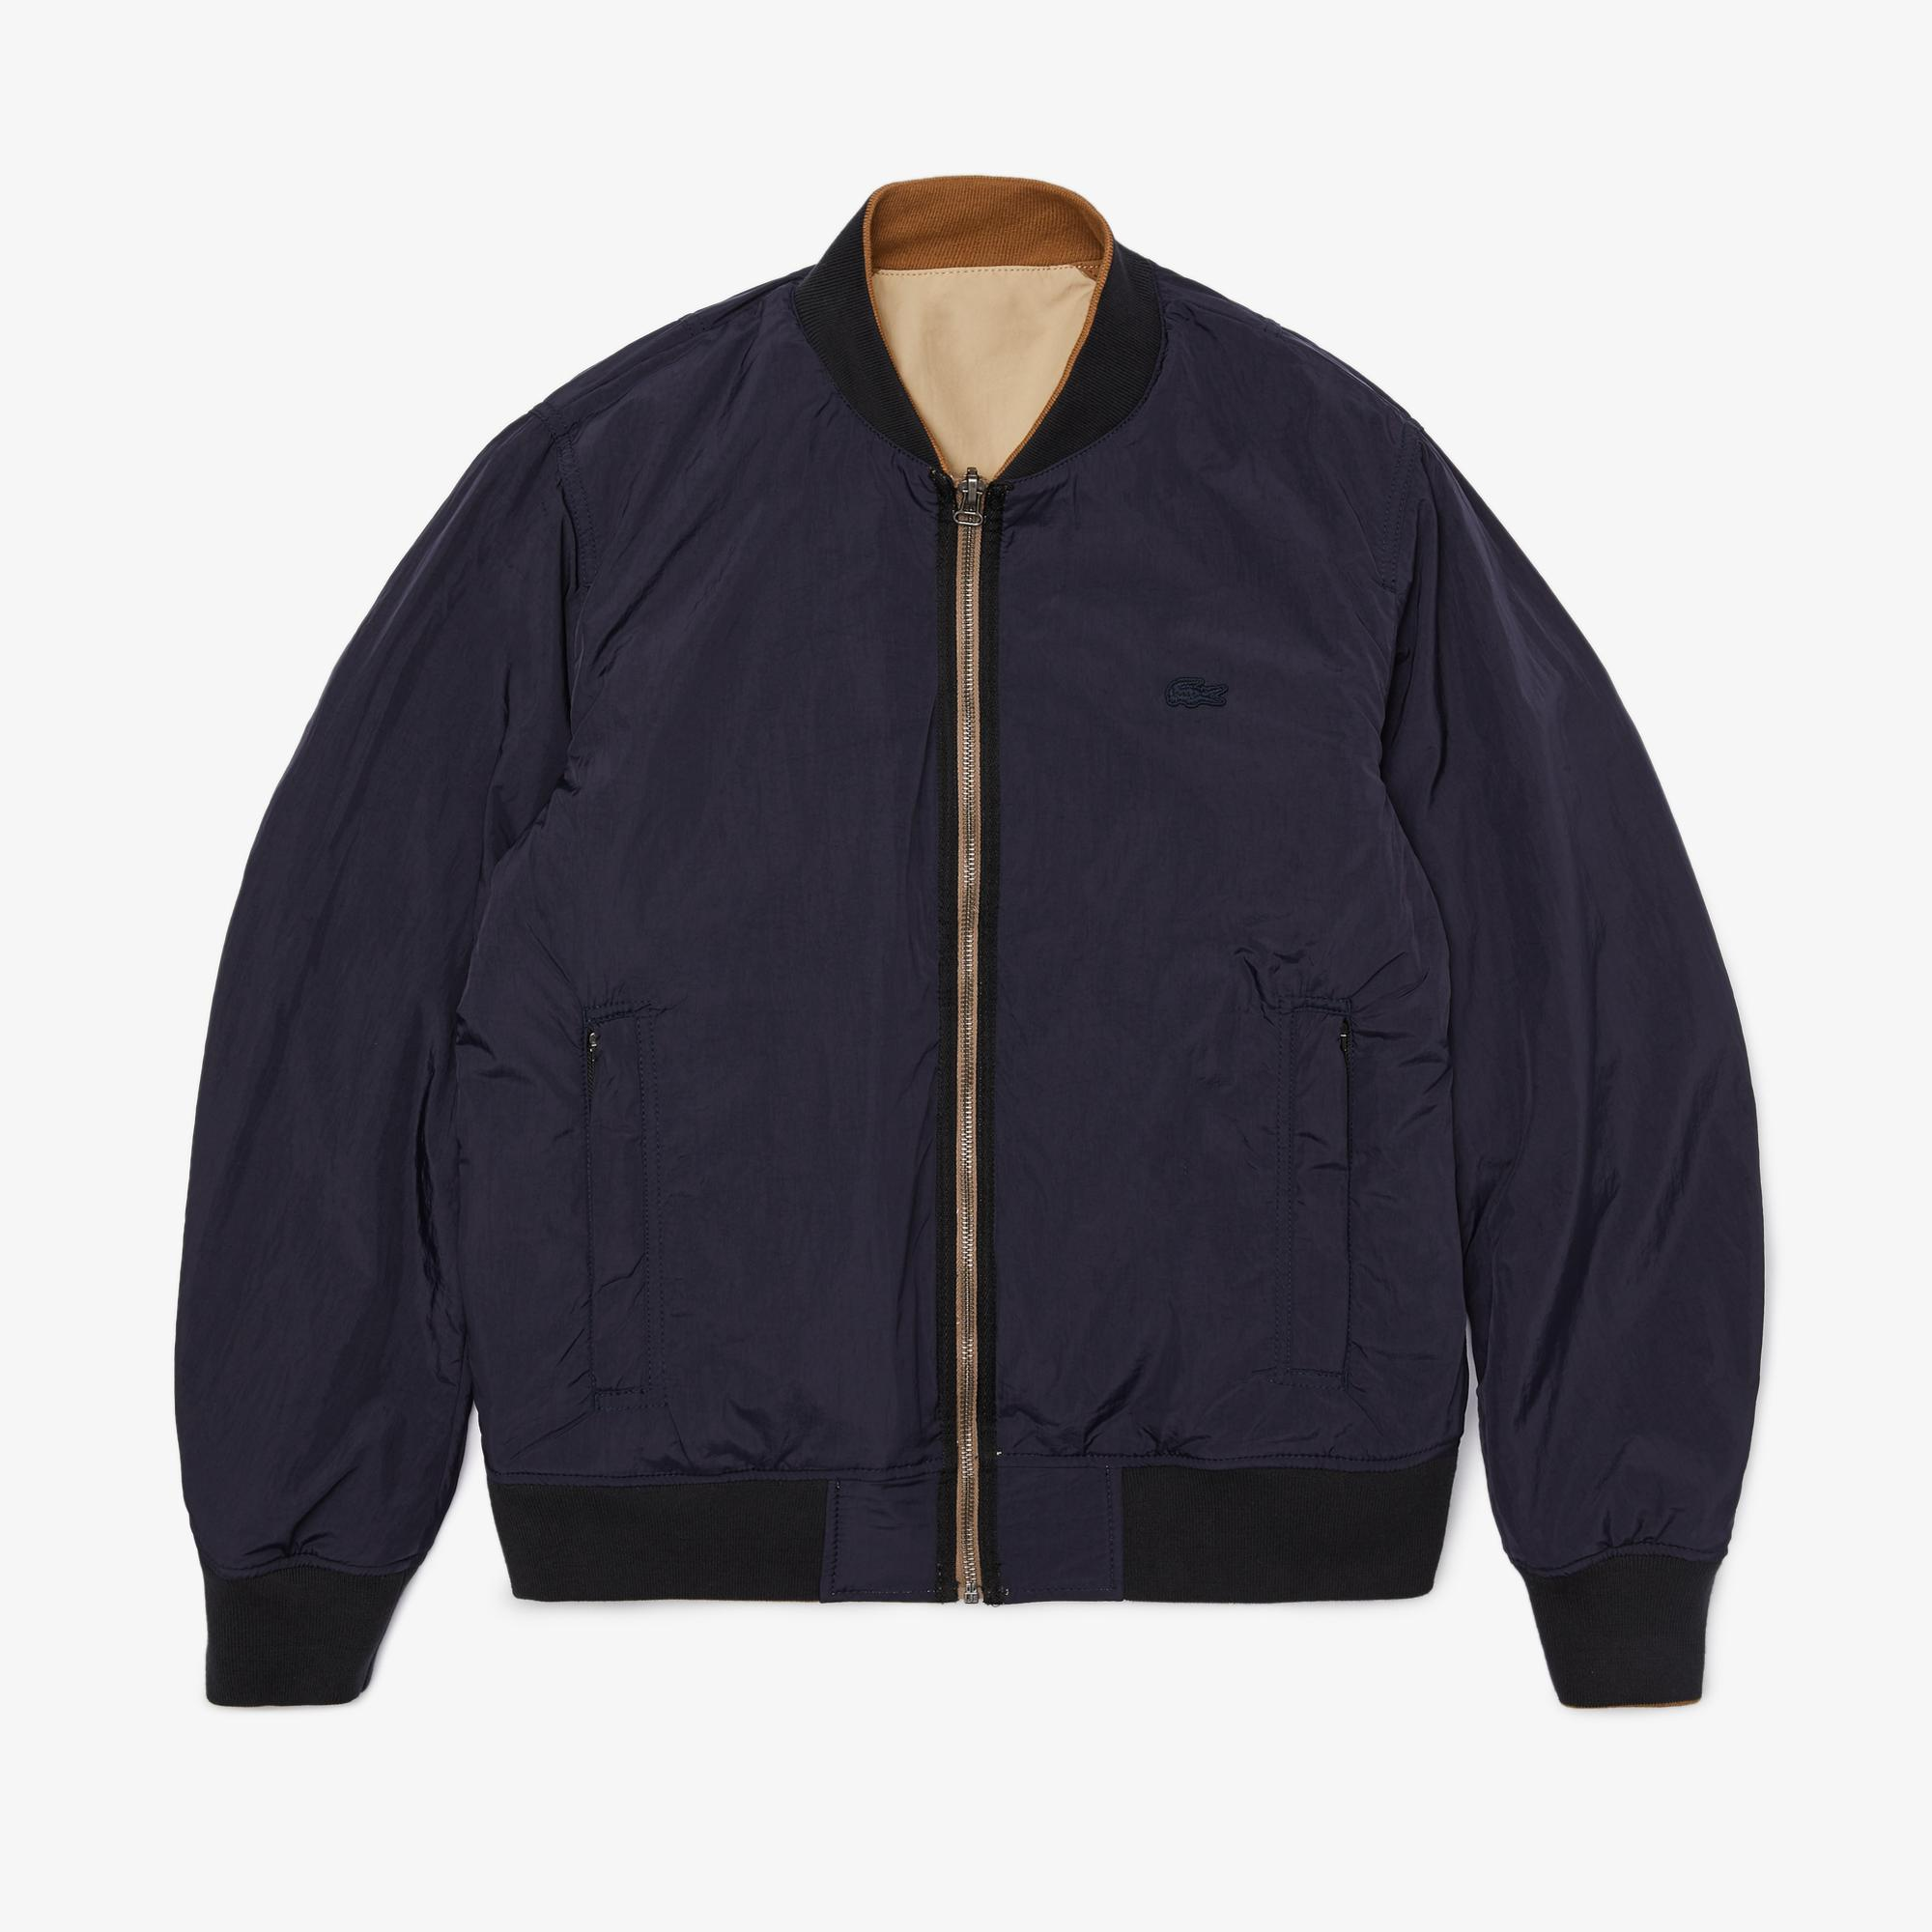 Lacoste Men's Bicolour Reversible Lightweight Bomber